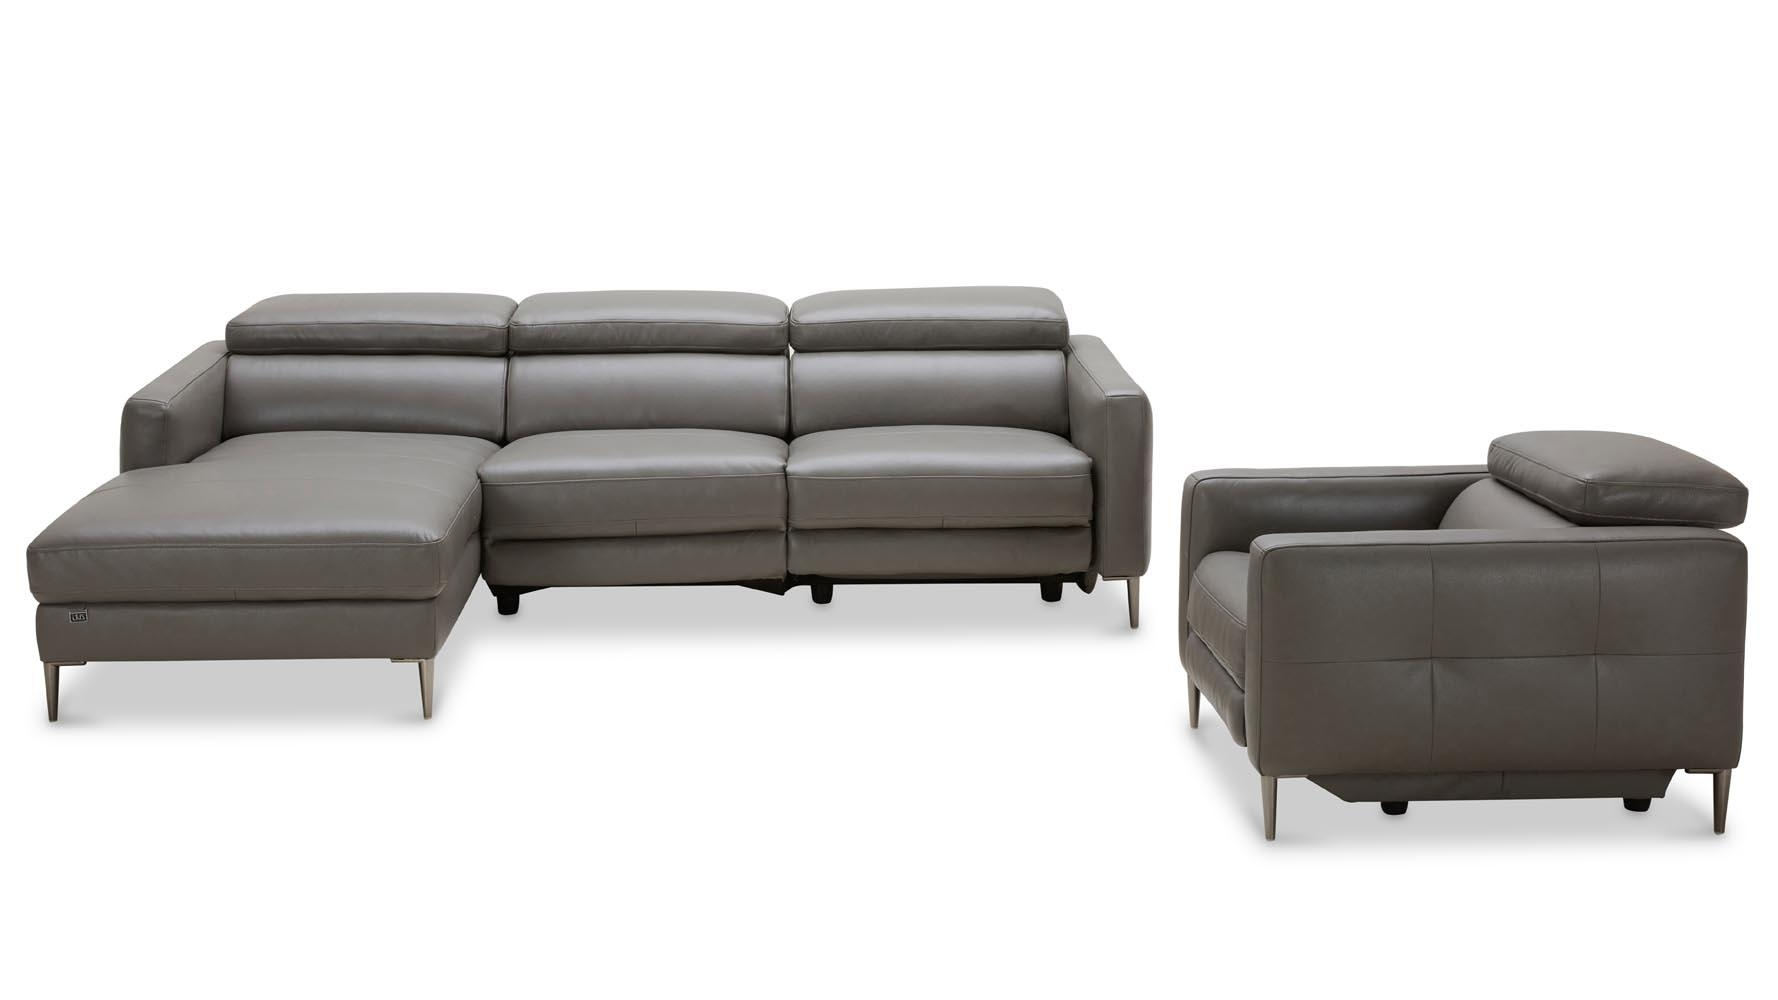 Modern Grey Leather Reno Sectional With Arm Chair | Zuri Furniture Throughout Modern Reclining Sectional (Image 11 of 20)